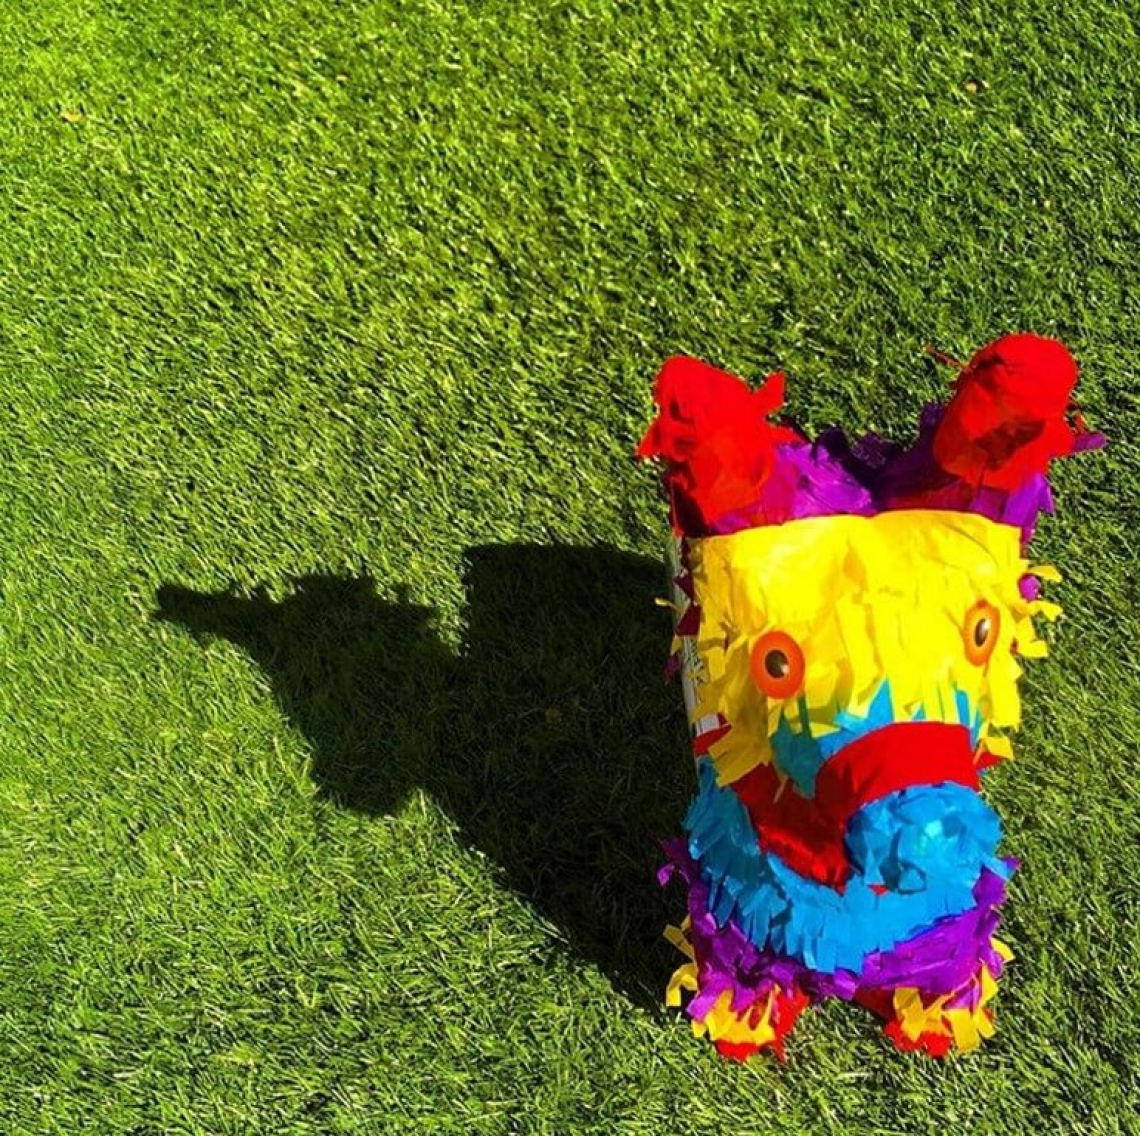 Pinatagrams, Pinata on grass, Nathan Butorac